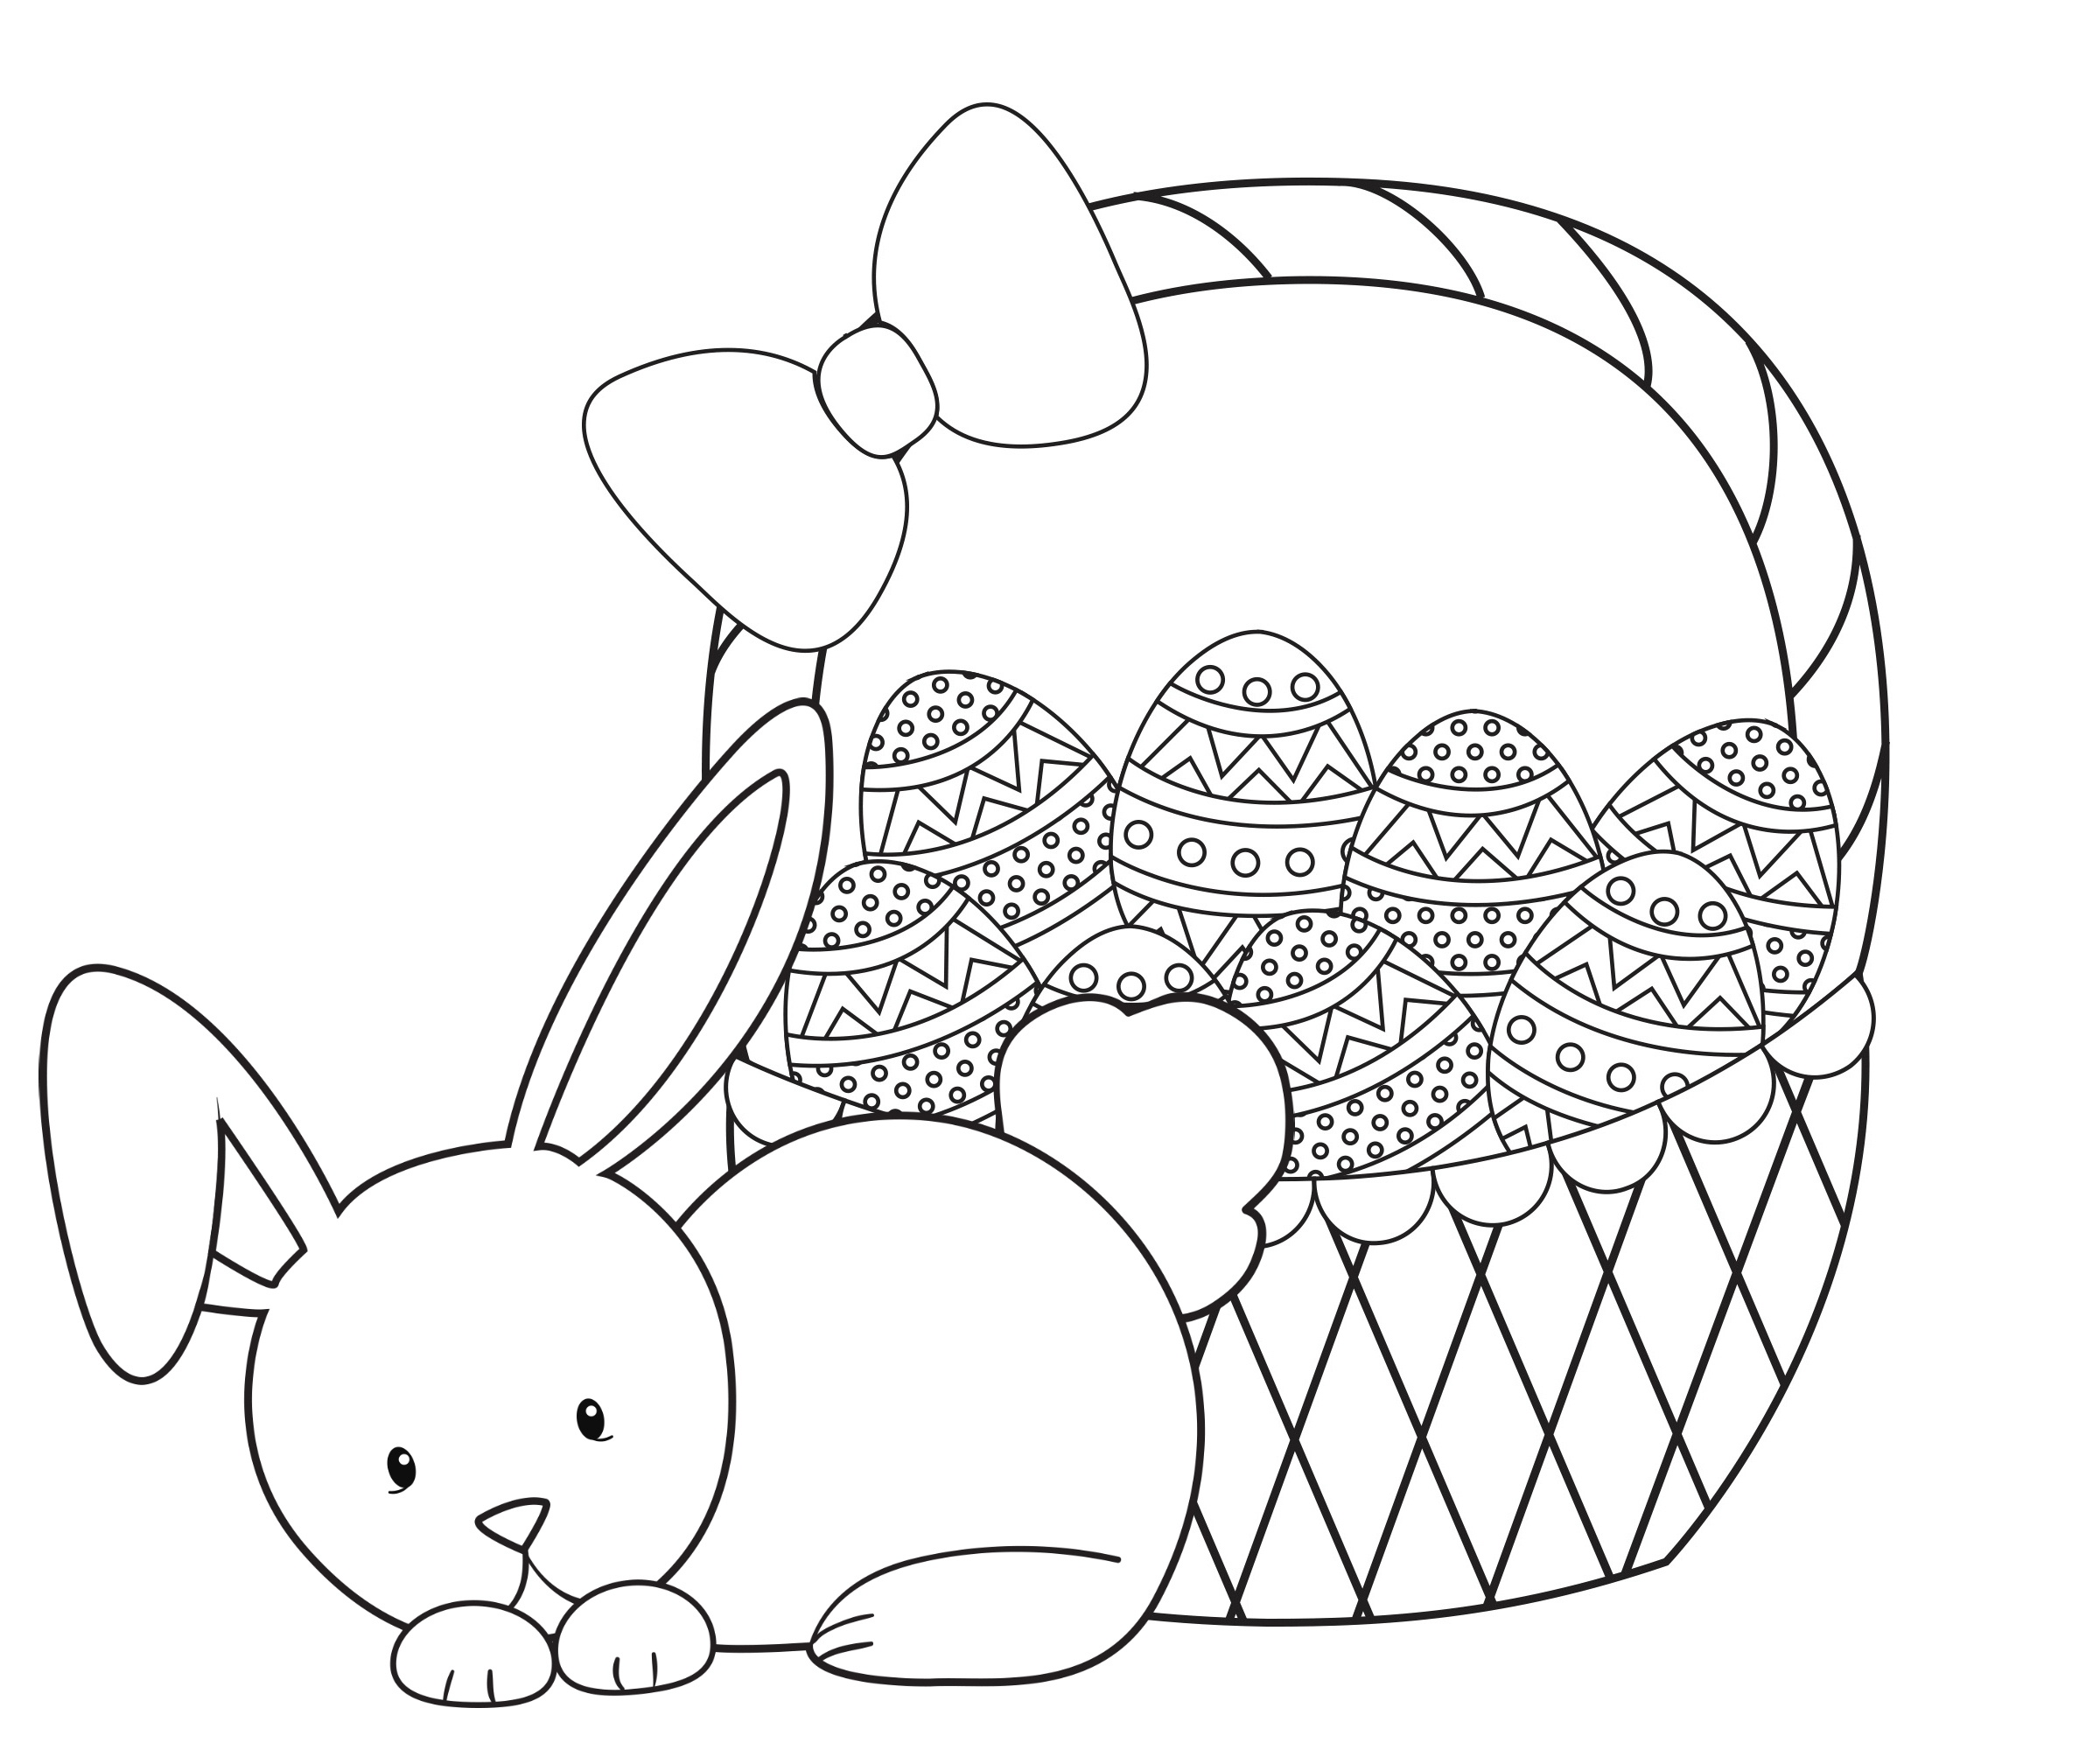 Easter Coloring Pages For Kids - Crazy Little Projects - Free Printable Easter Pages